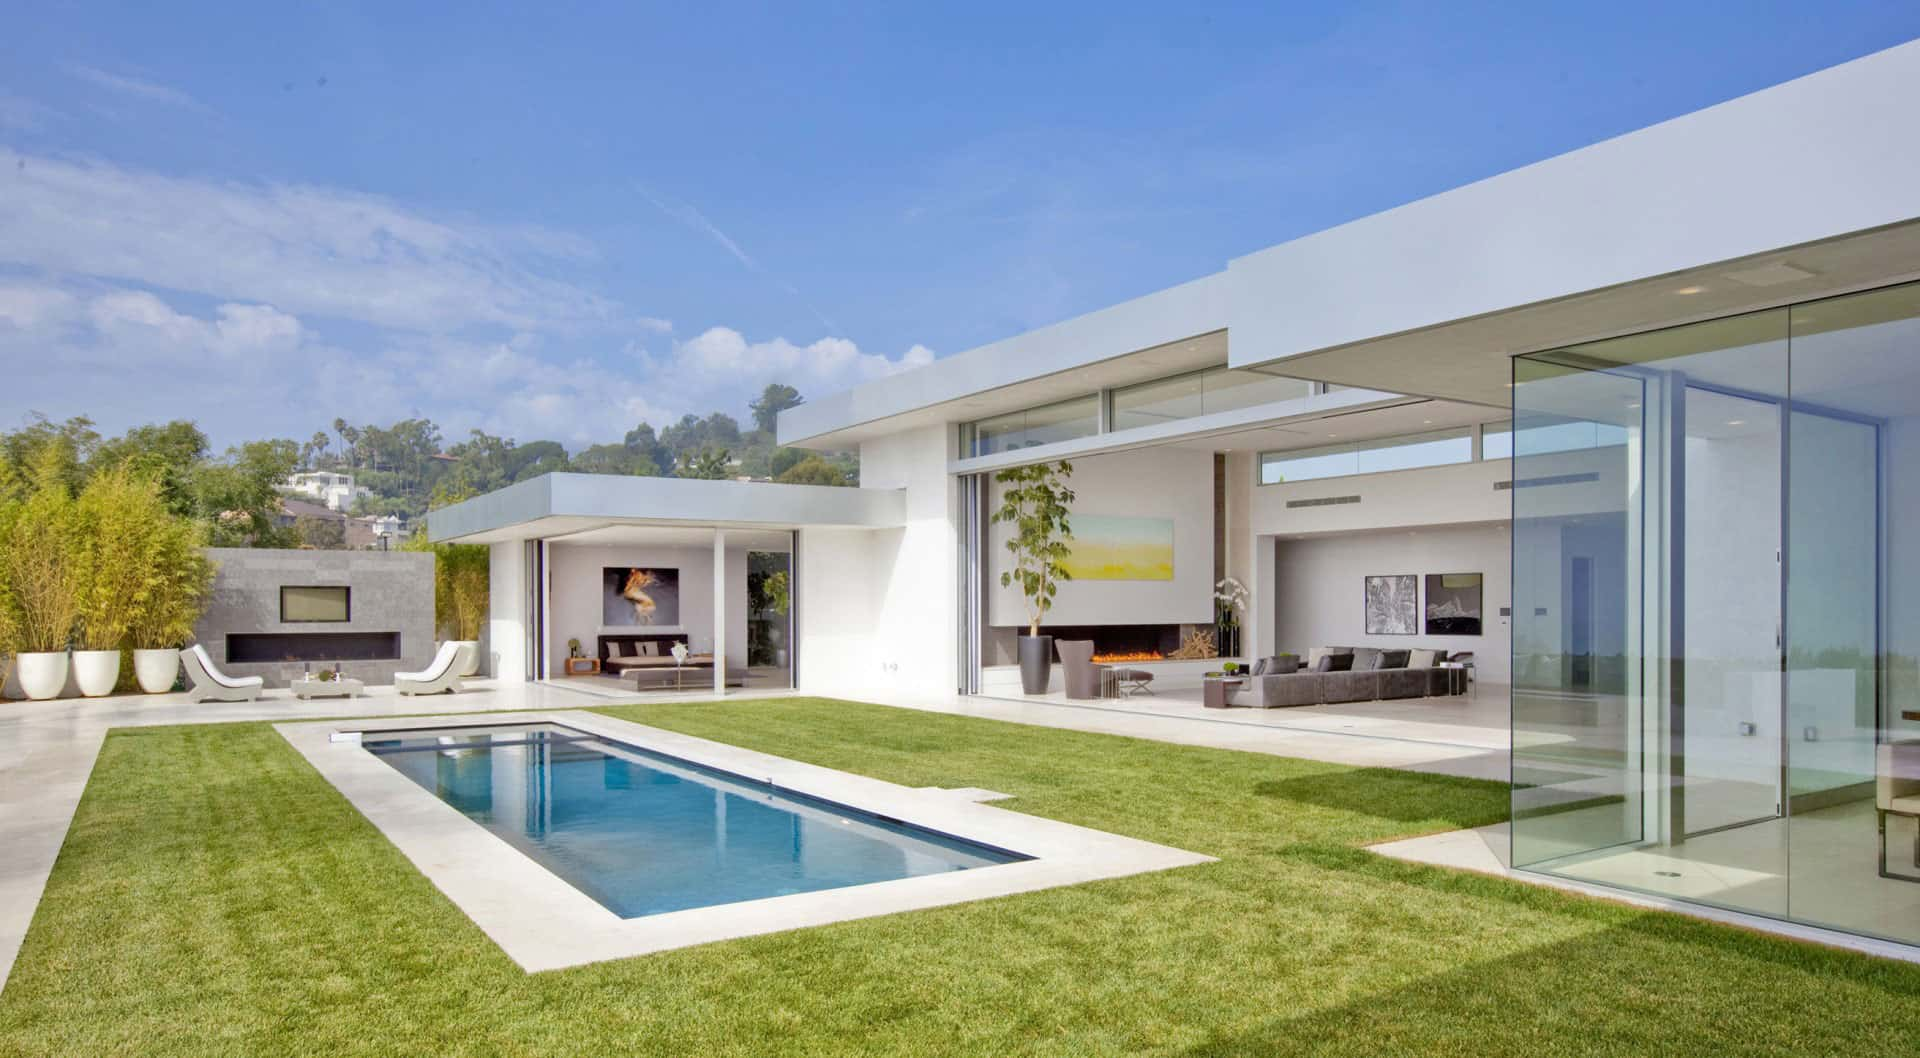 70s home transformed into modern beverly hills masterpiece for Home piscine